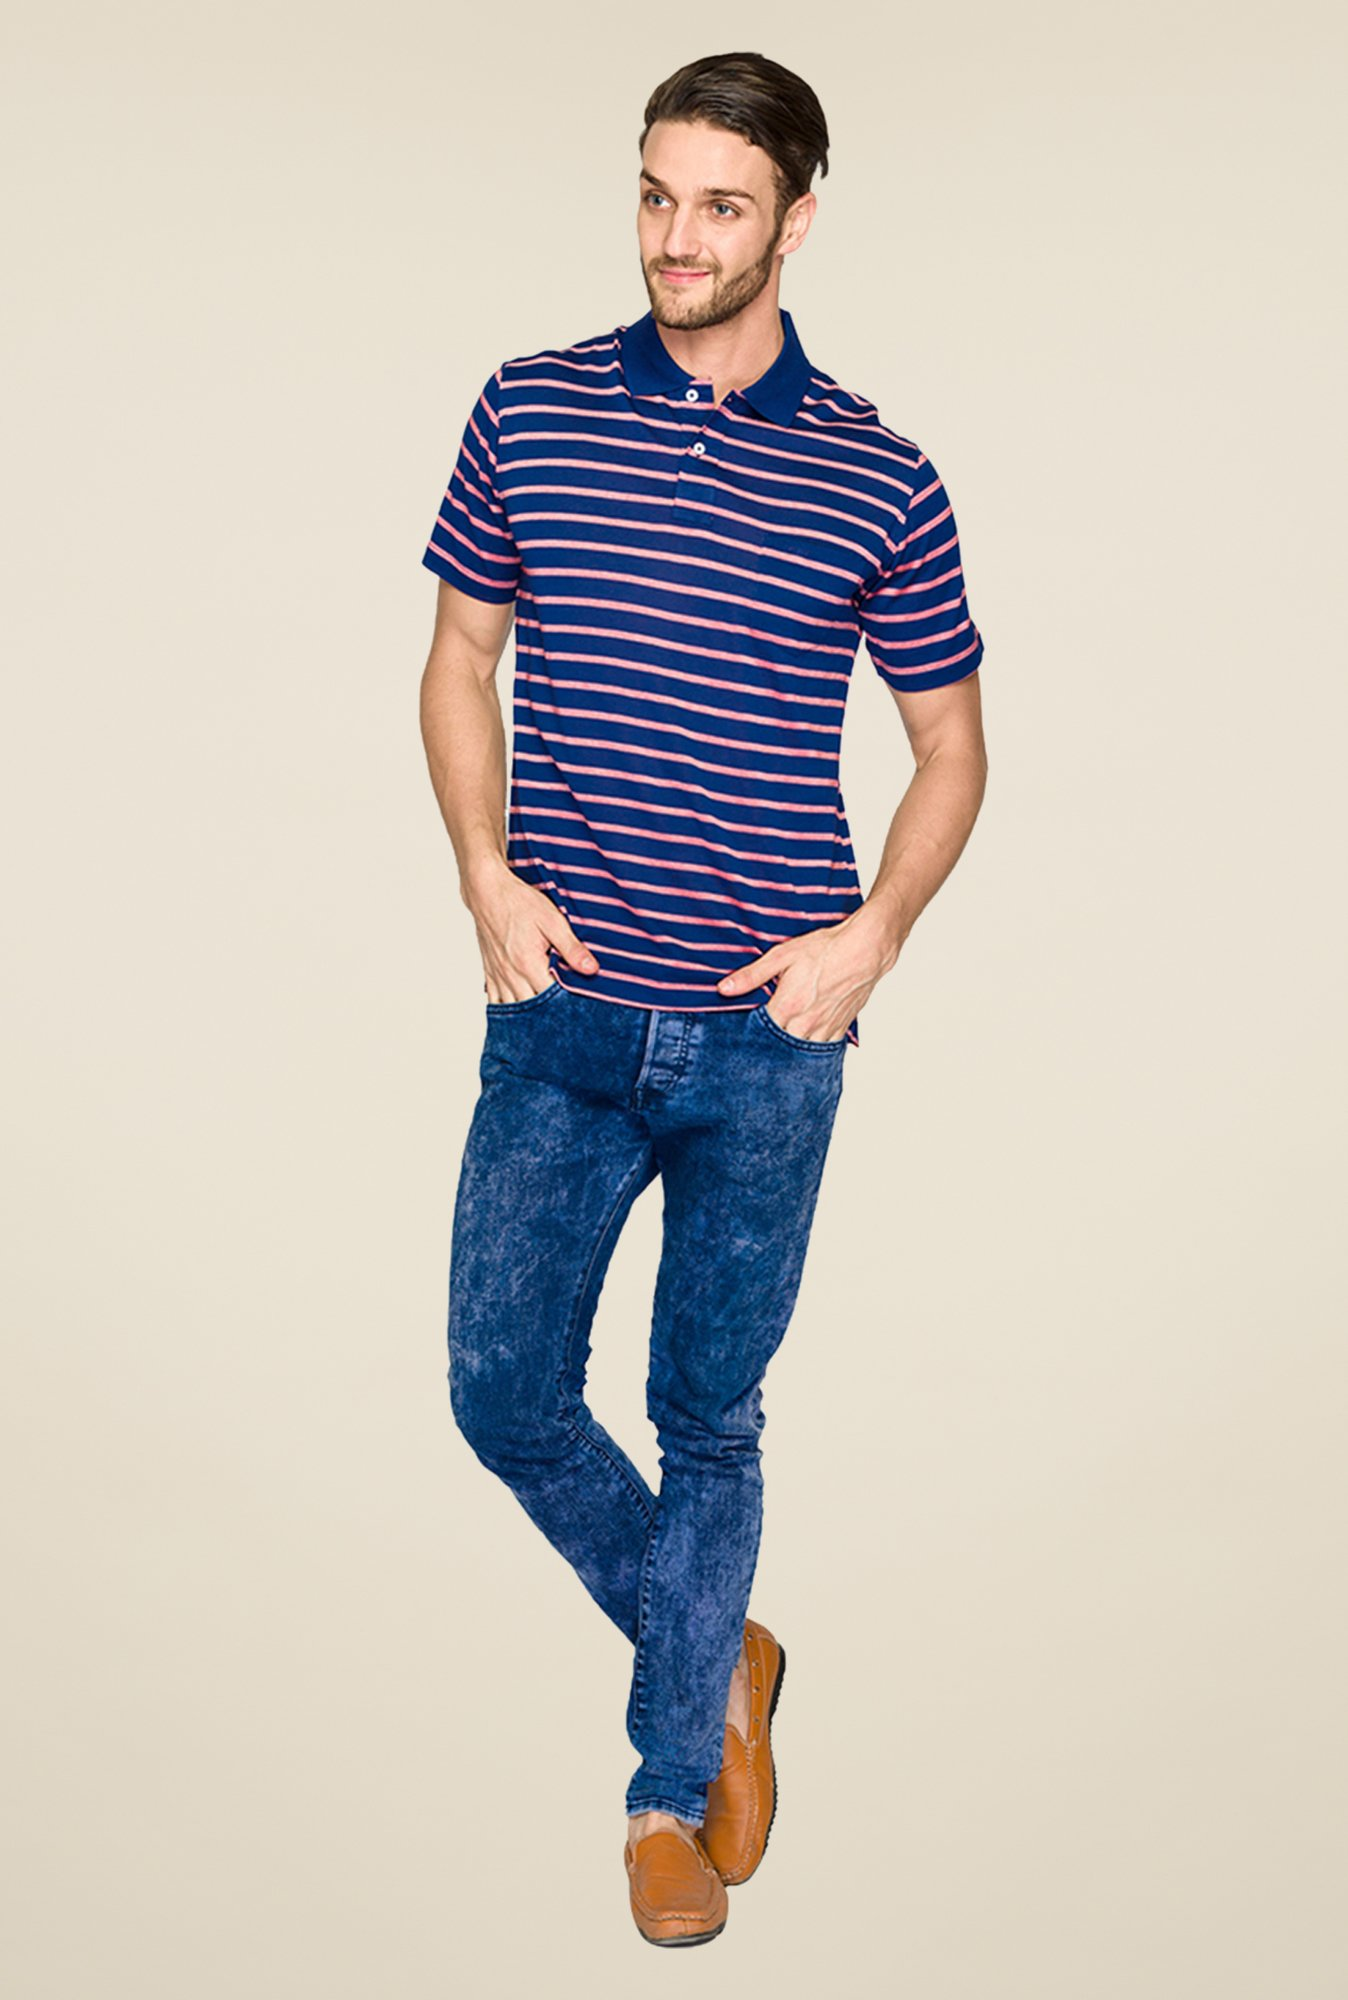 ColorPlus Dark Blue Striped Polo T Shirt